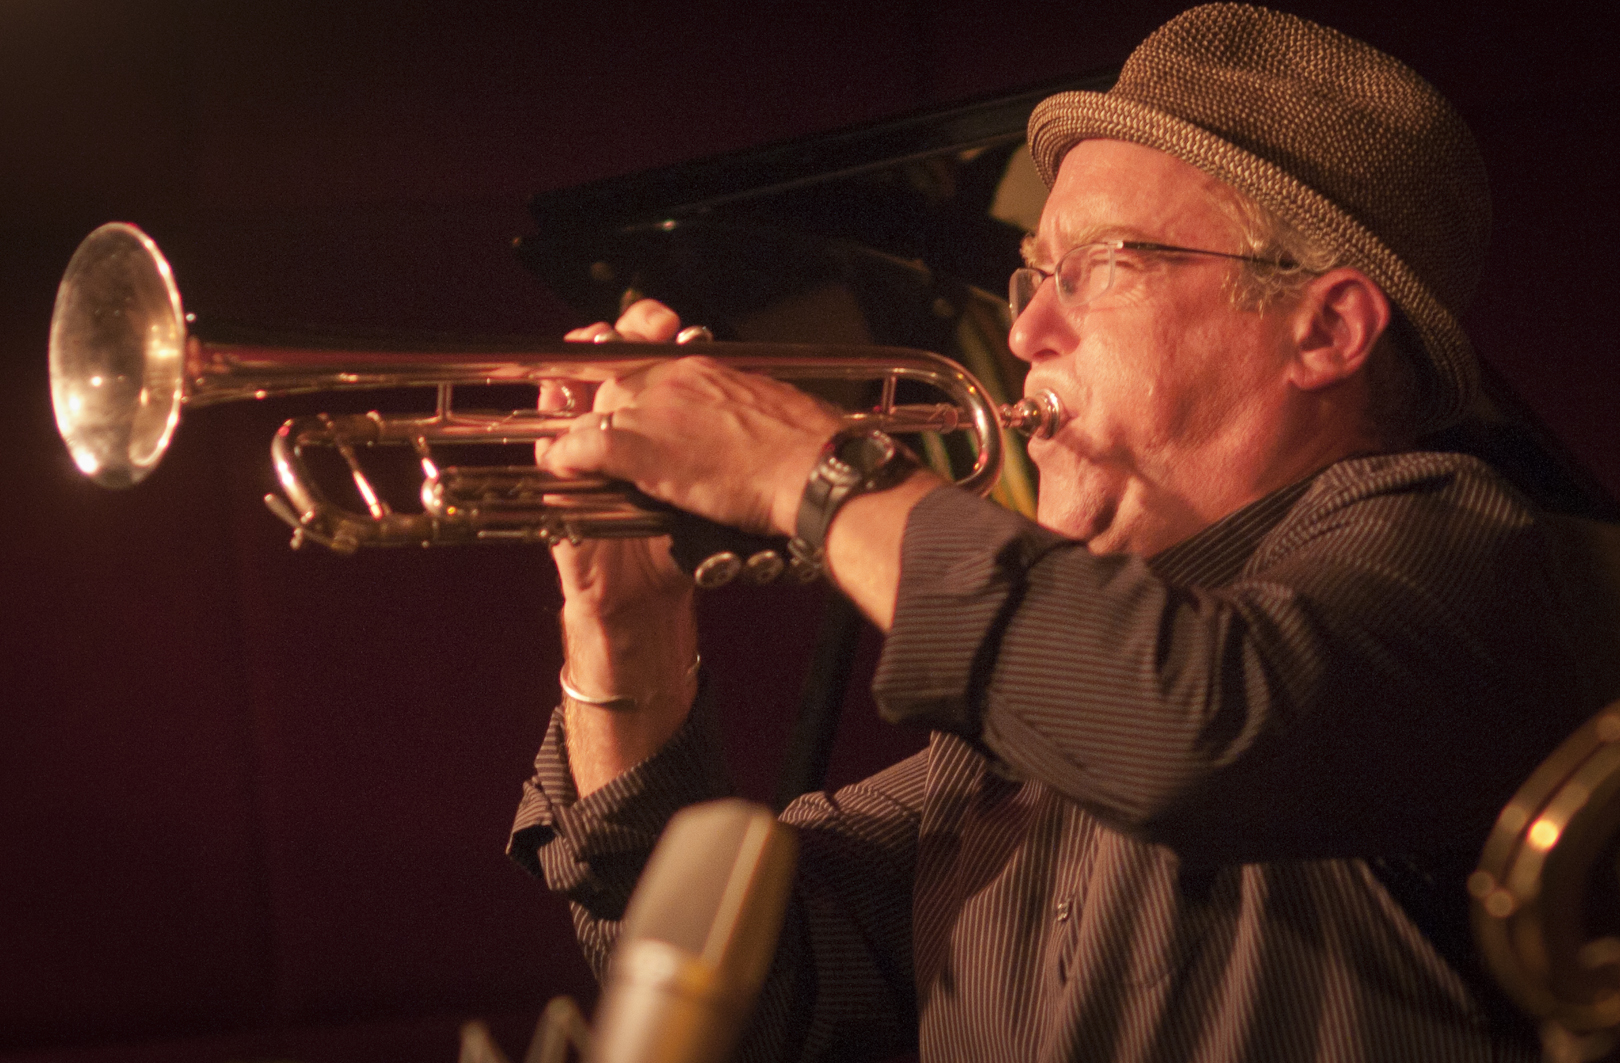 Dave Douglas with Orange Afternoons at the Jazz Standard